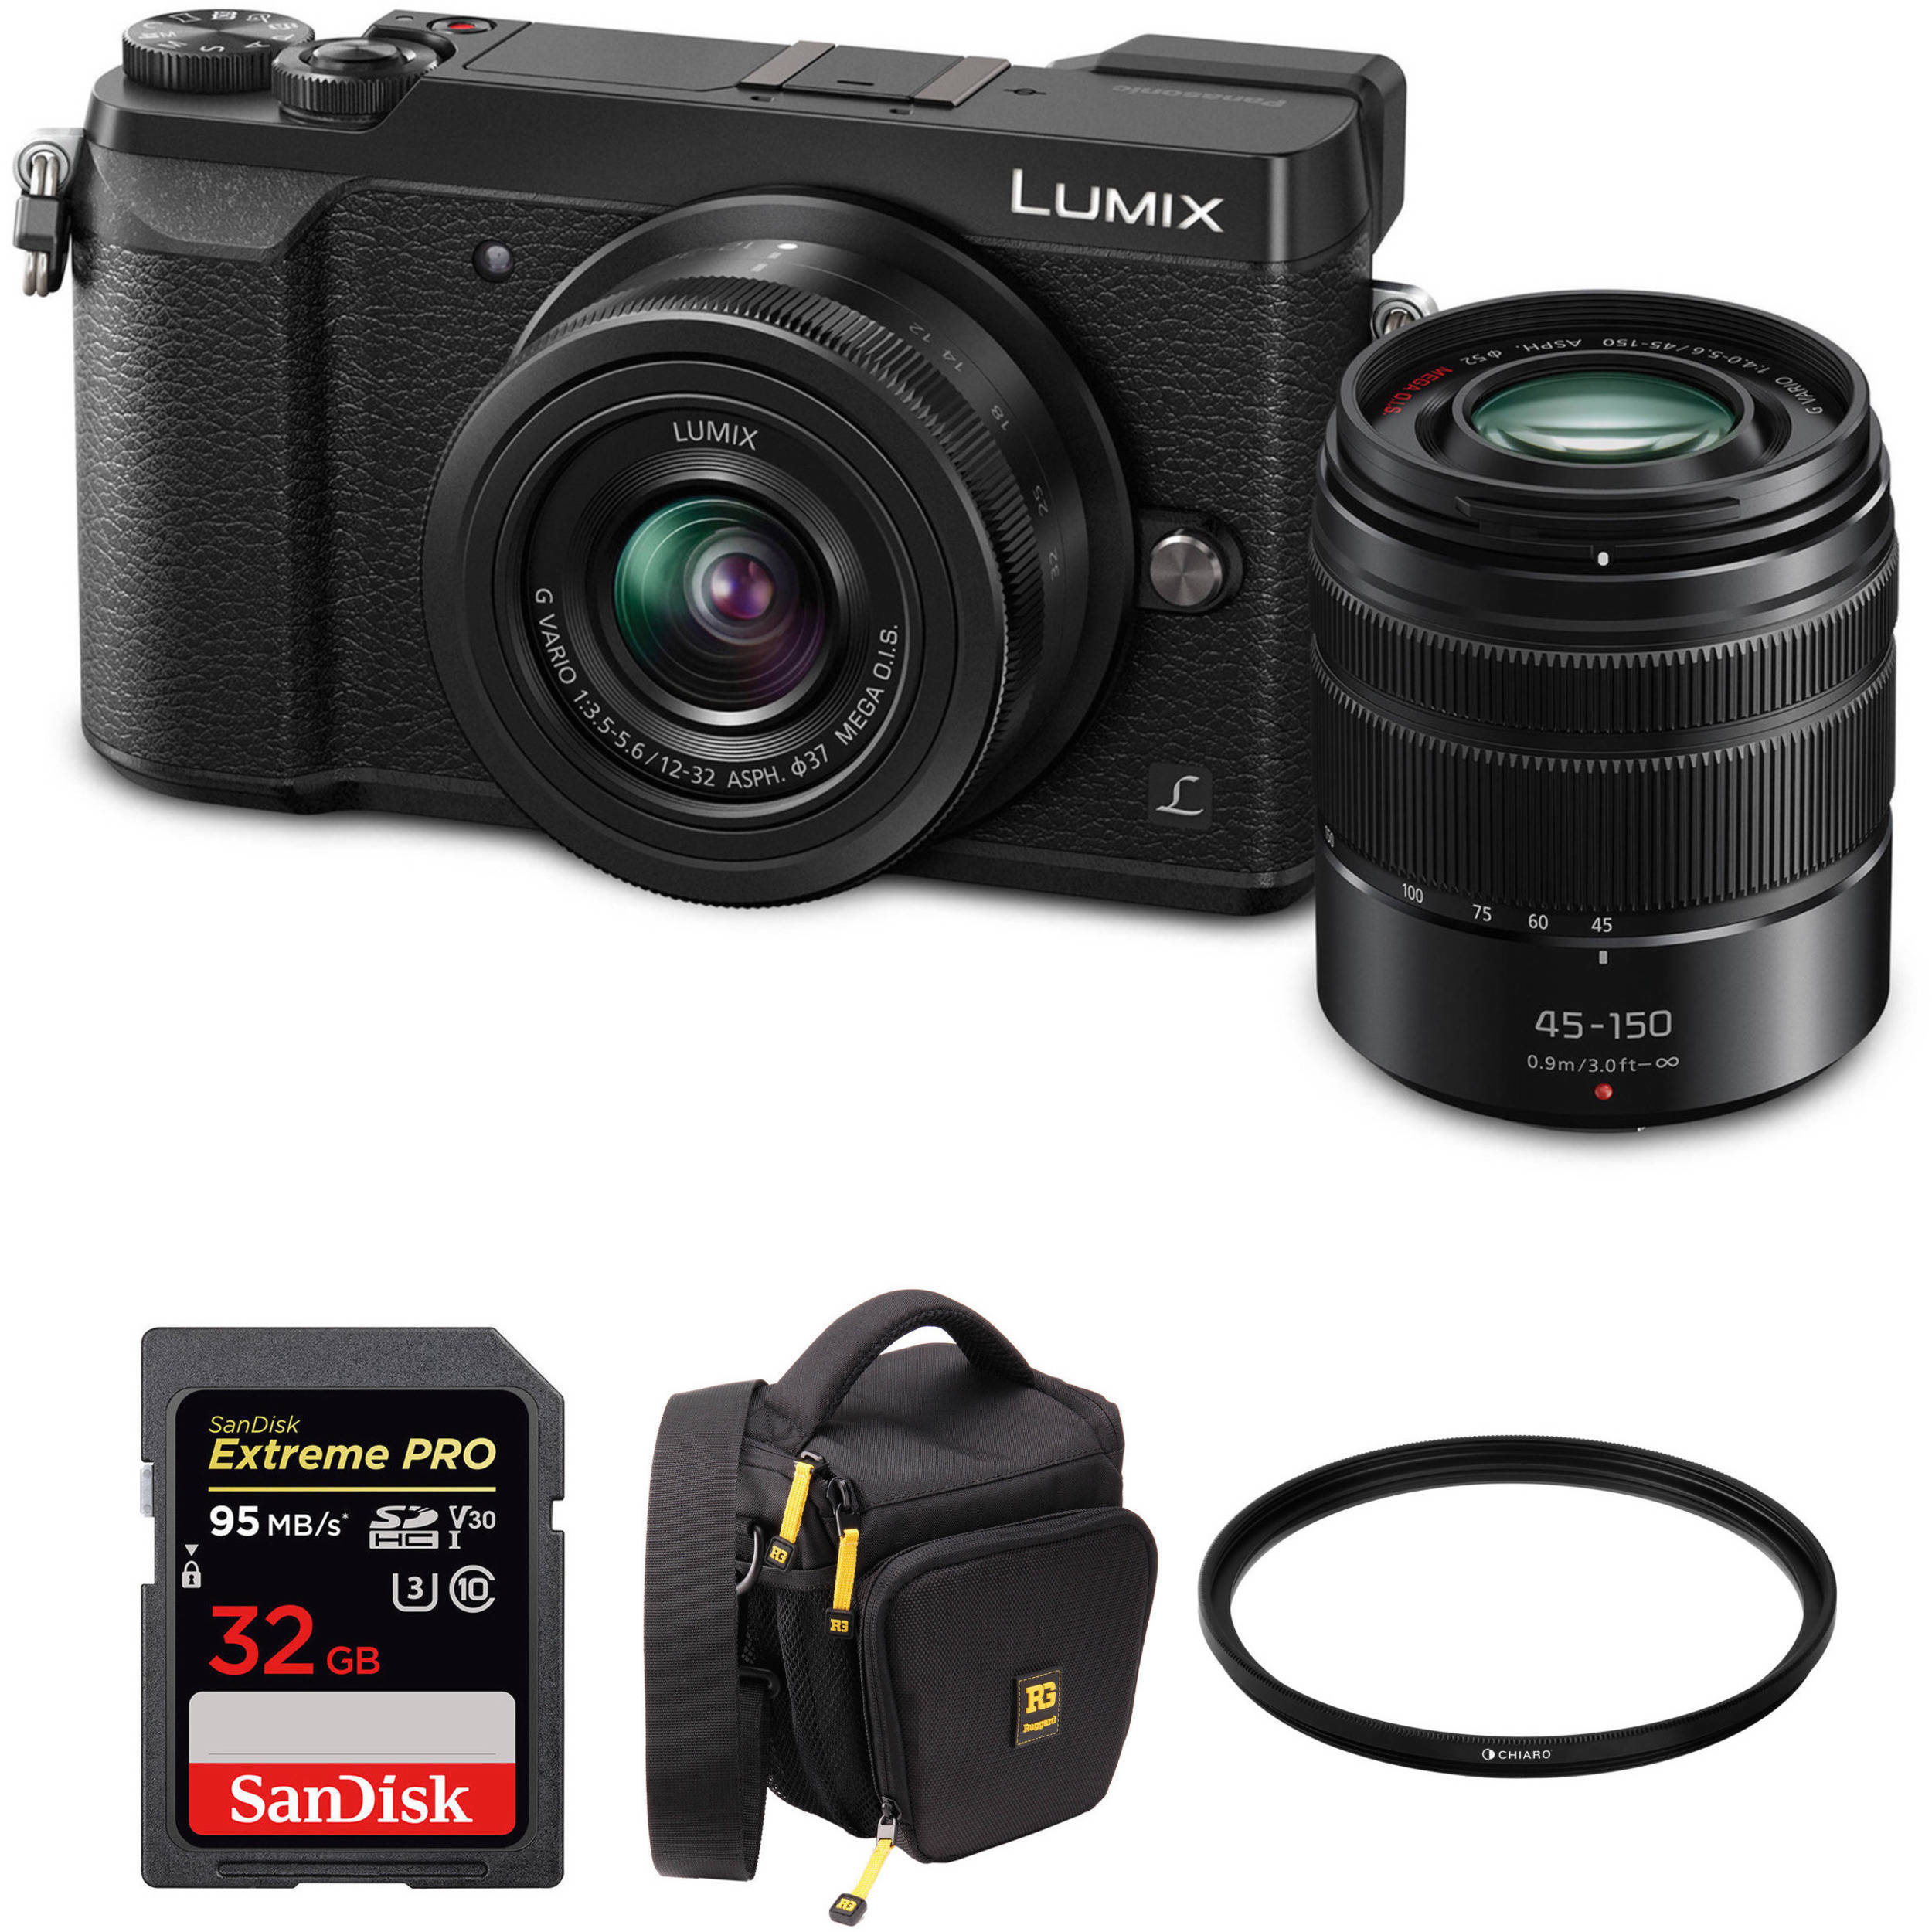 Hot Deal: Panasonic GX85 with 12-32mm & 45-150mm Lenses & Free Accessories for $497.99